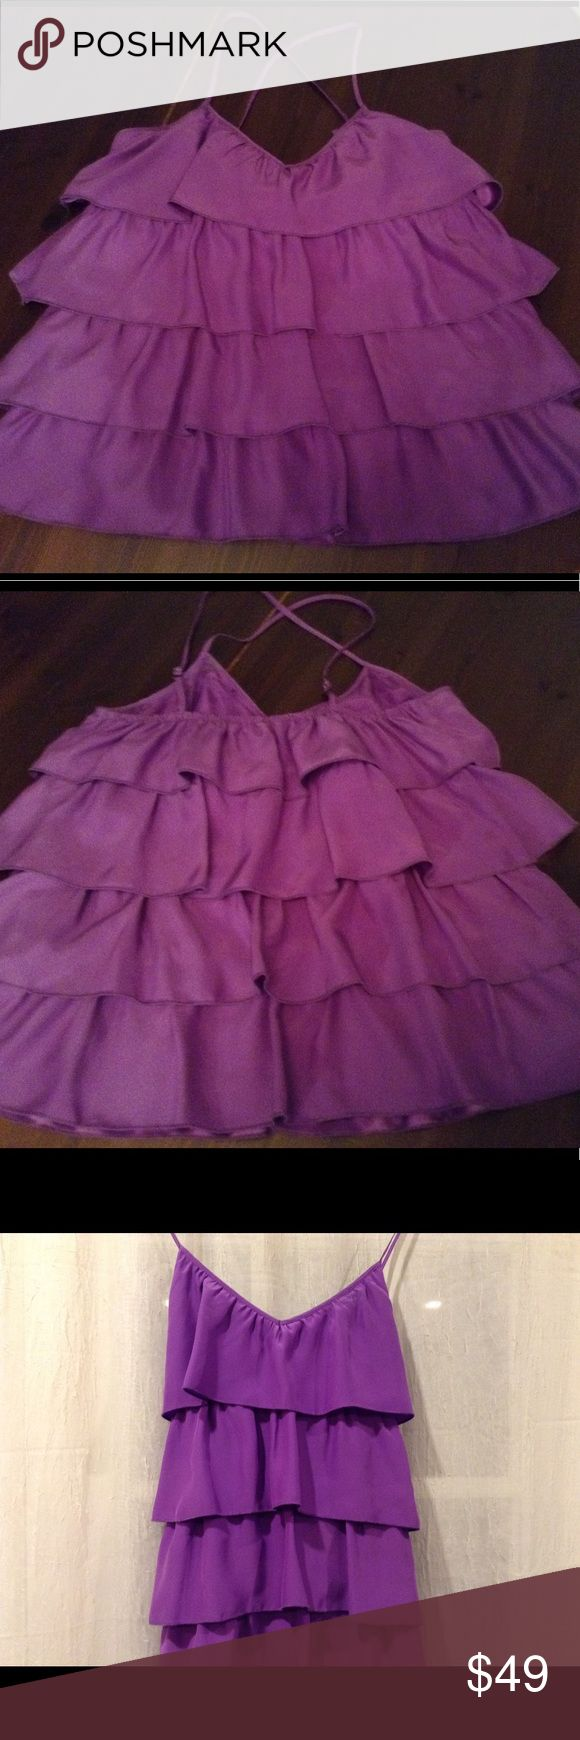 Parker purple ruffle cami top size L never worn Parker purple cami top. Adjustable straps. Ruffle tiers. 100% silk  new never worn. Size L but could fit M. Parker Tops Camisoles